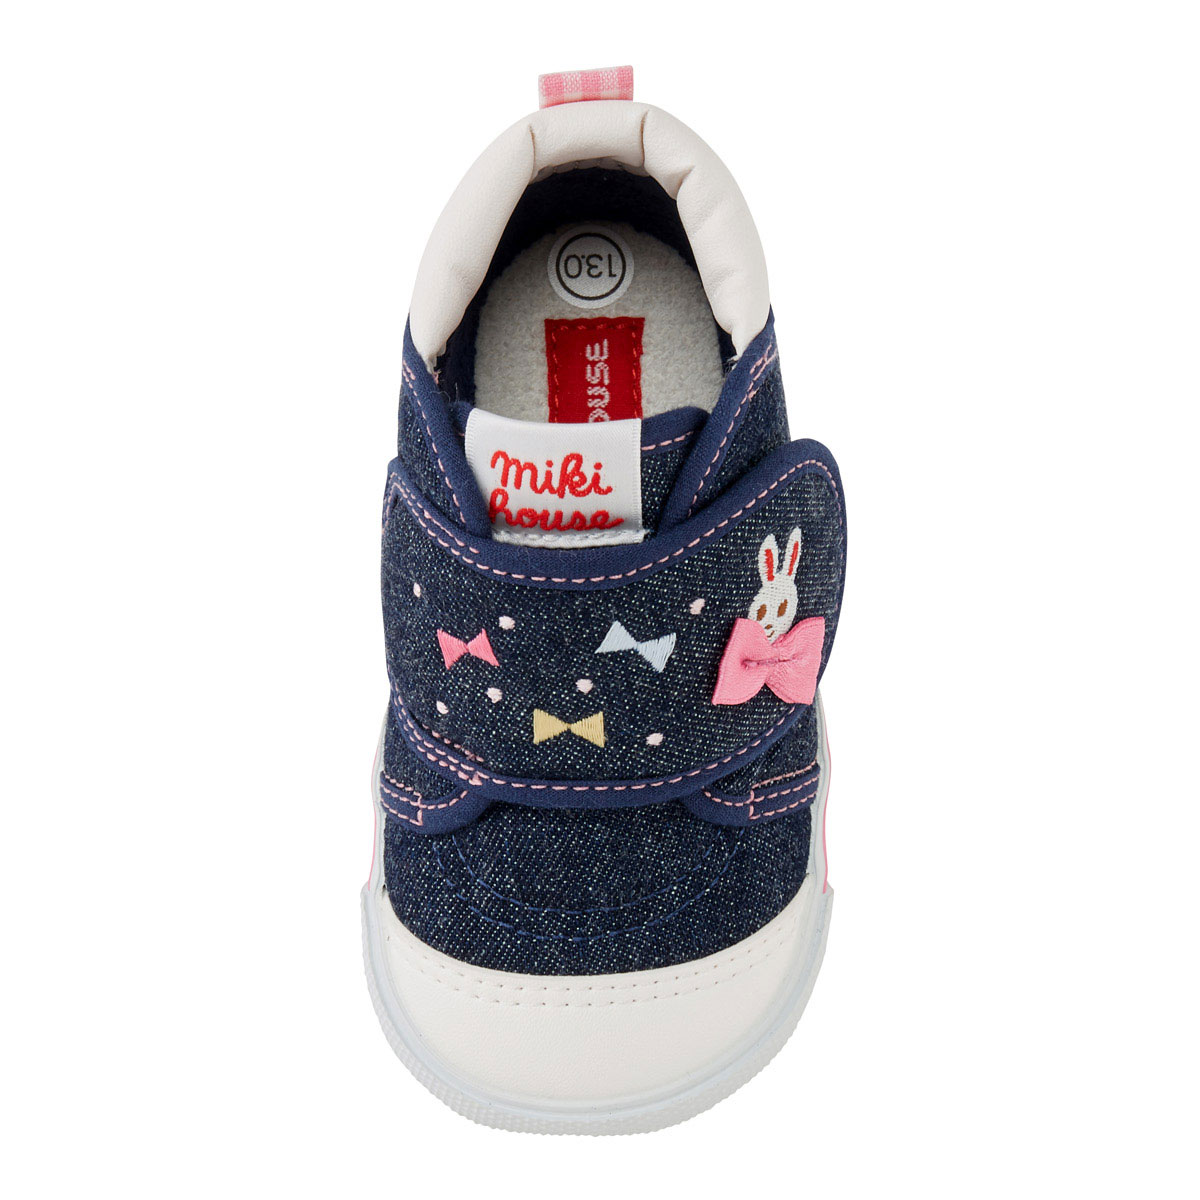 Miki house strawberry hunting ♪ うさこ second baby shoes (13cm - 16cm)